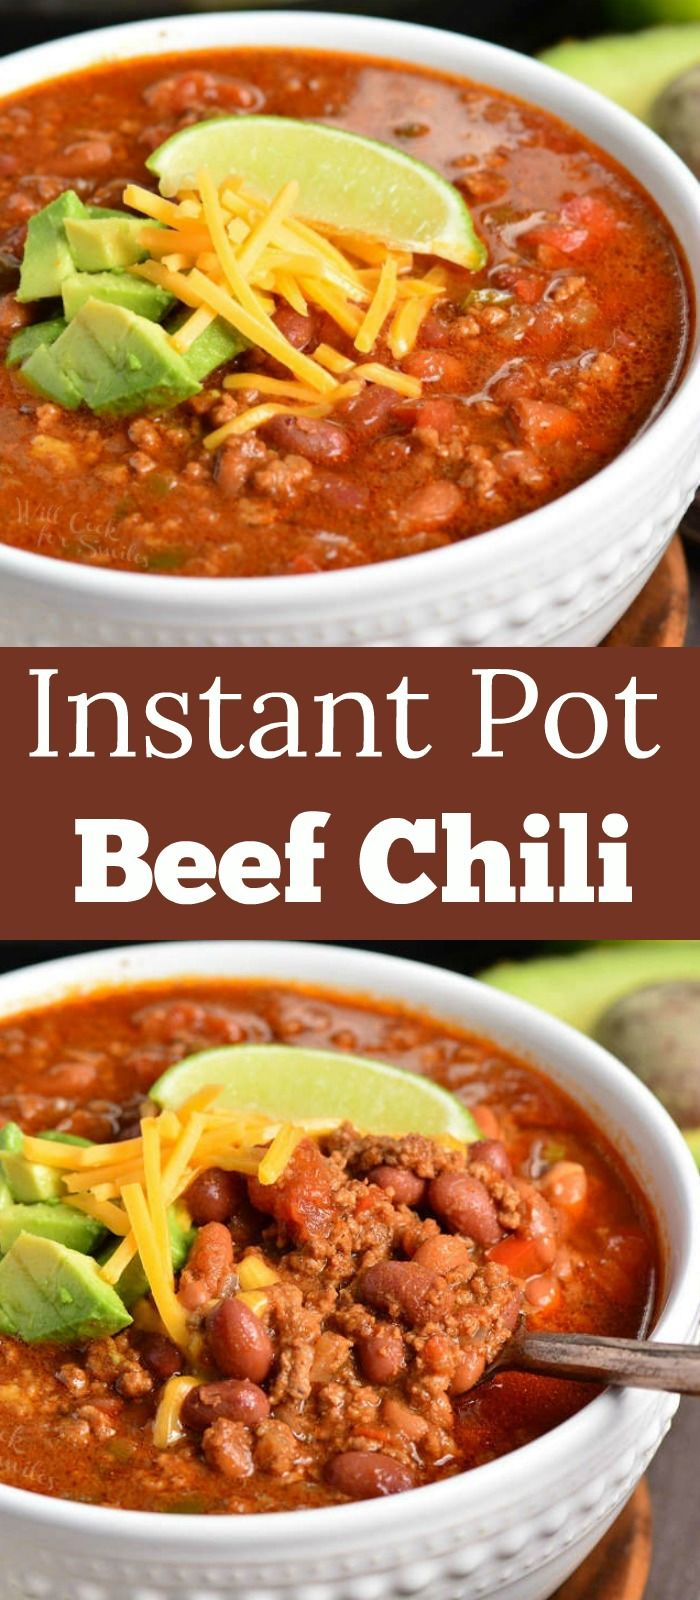 Delicious Chili In 2020 Dinner Recipes Easy Family Family Dinner Recipes Slow Cooker Dinner